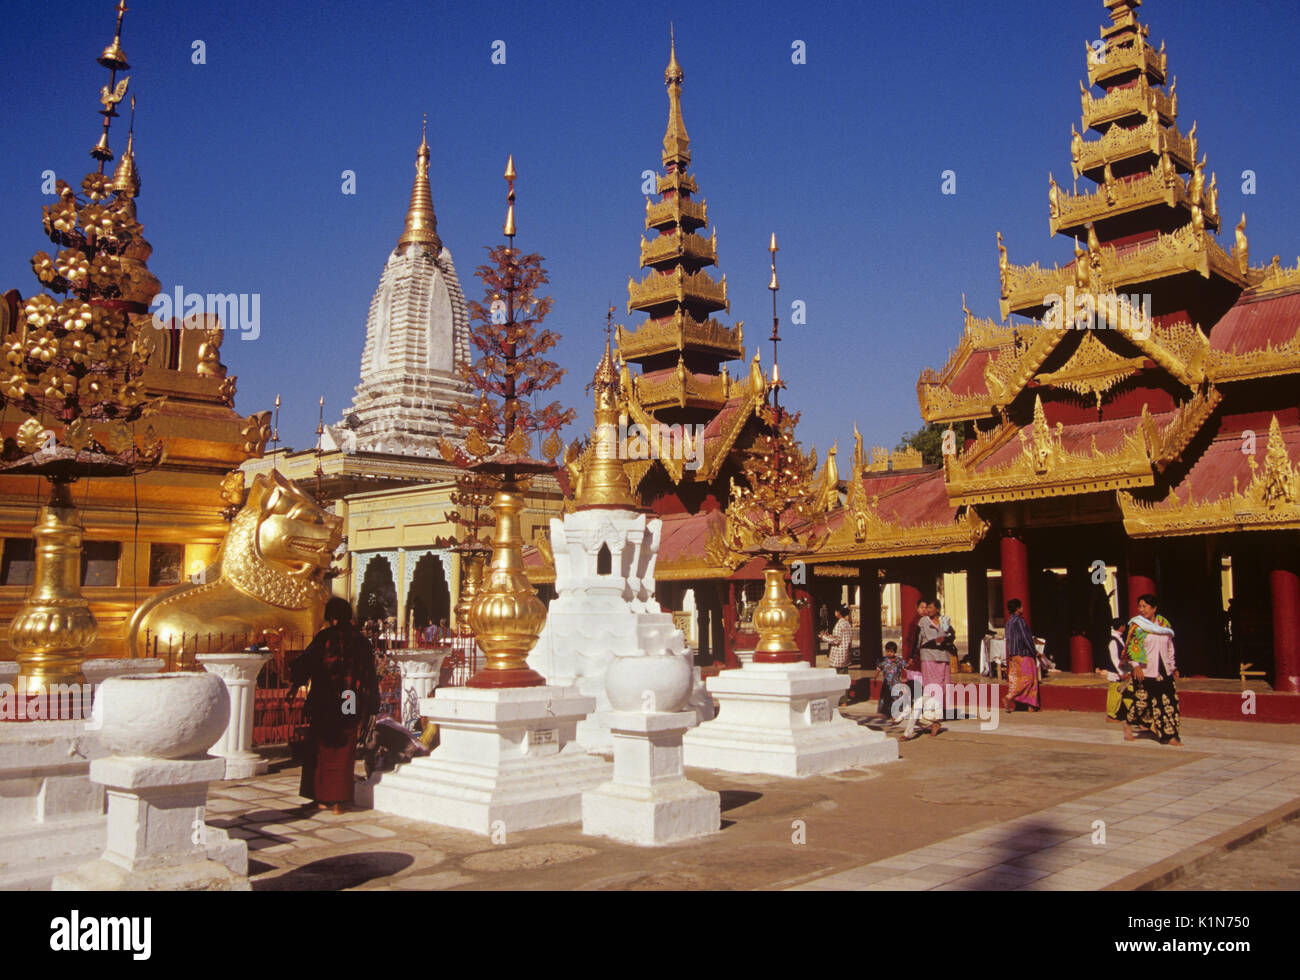 Shrines and pavilions at Shwezigon Pagoda, Pagan (Bagan), Burma (Myanmar) - Stock Image